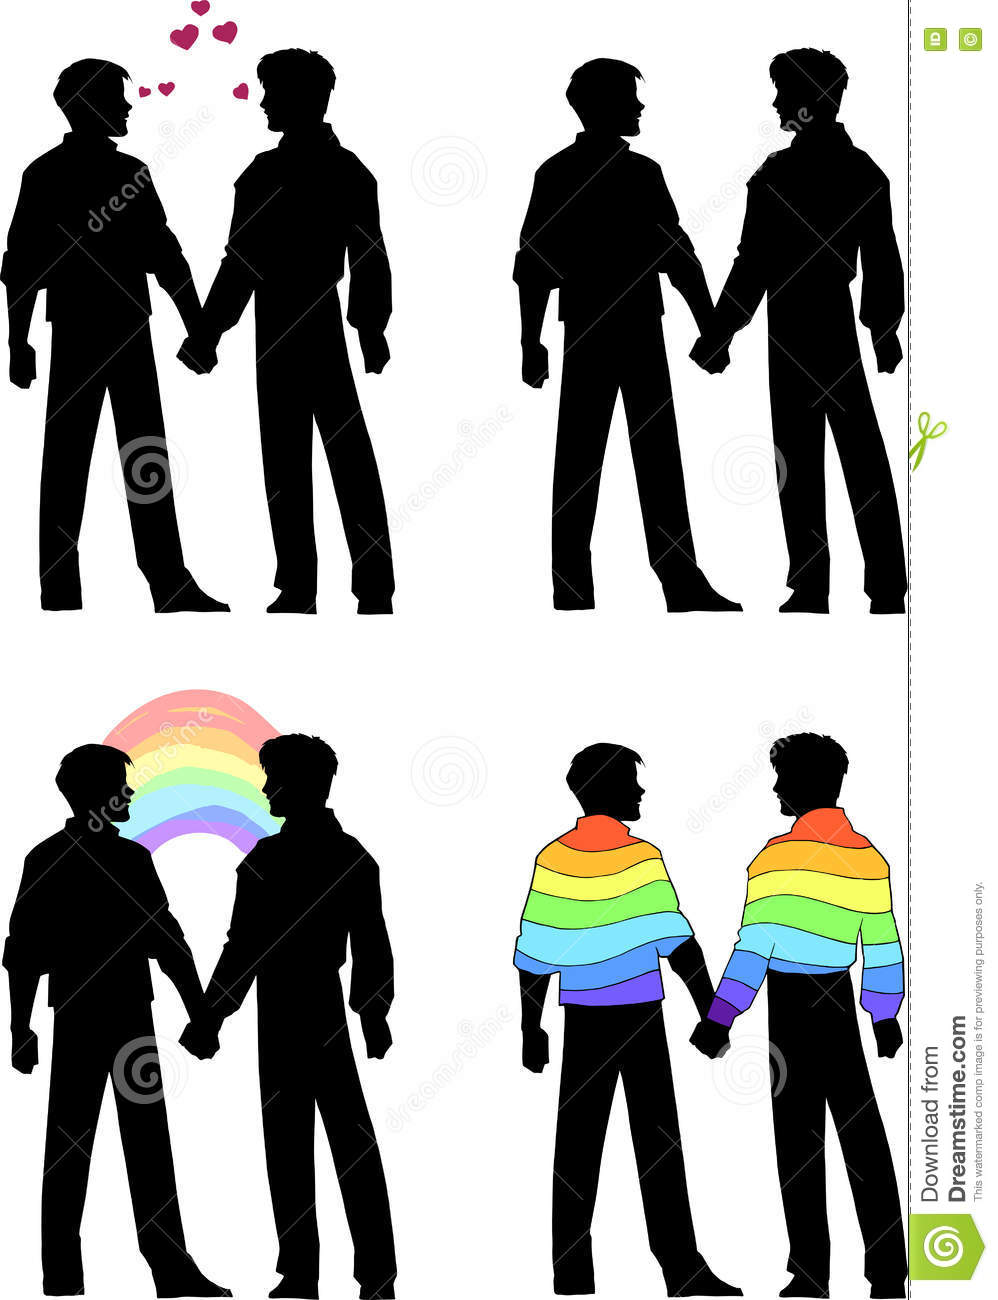 Two men holding hands marriage prayer